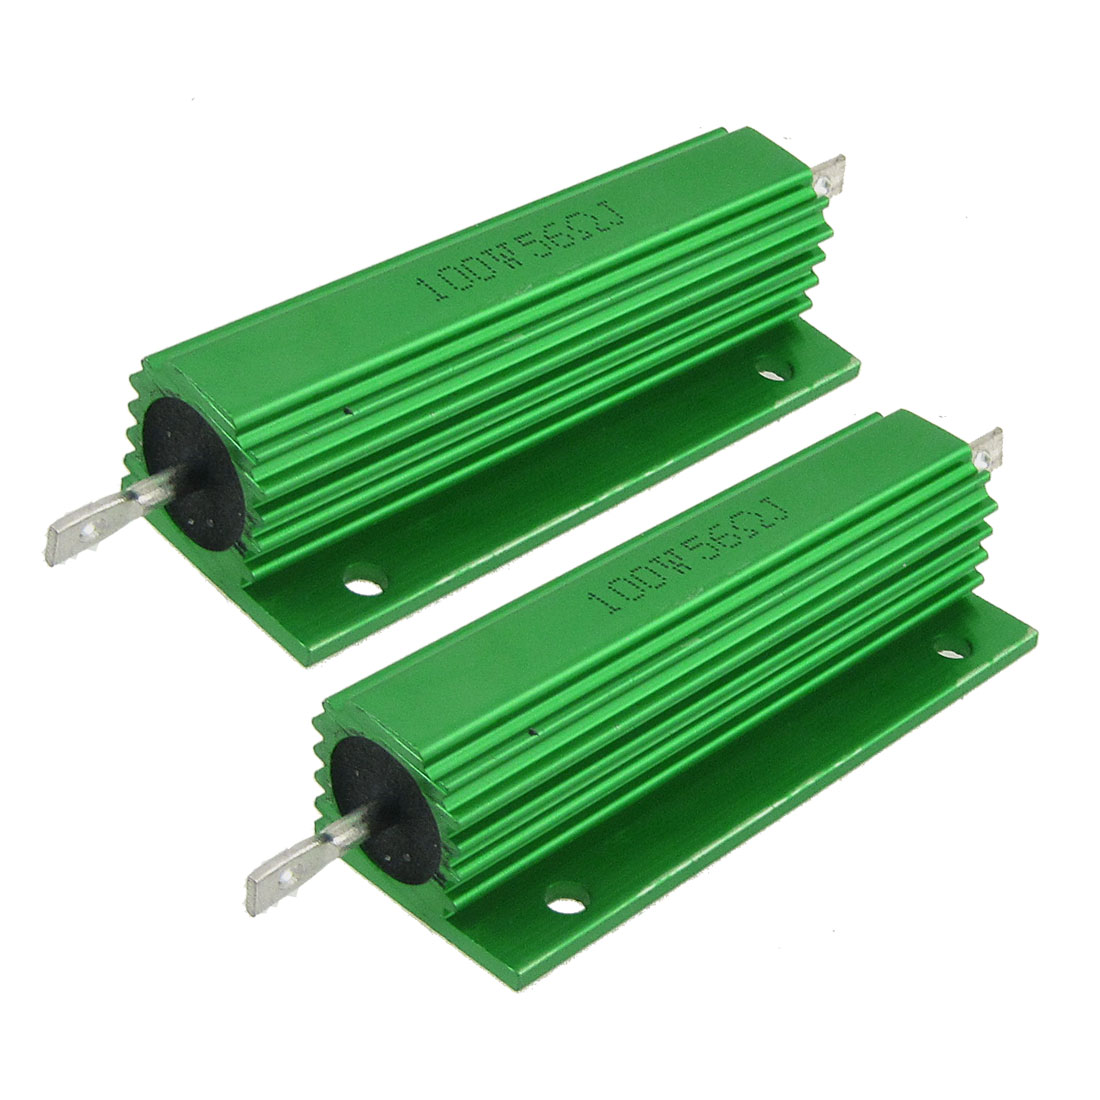 2 Pcs Chasis Mounted Green Aluminum Clad Wirewound Resistors 100W 56 Ohm 5%